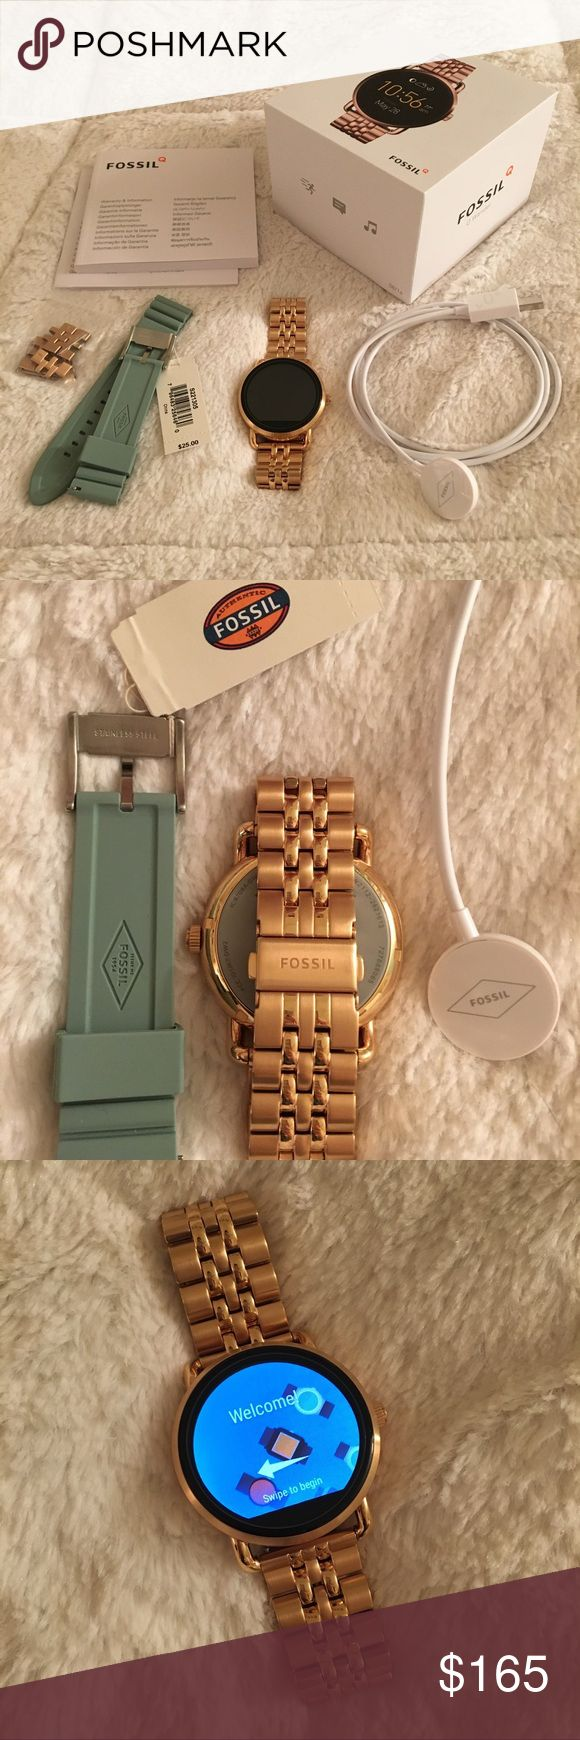 Fossil Q Wander touchscreen SmartWatch, rosegold. Selling a like-new Fossil Q Wander Gen 2 digital touchscreen SmartWatch, in rosegold/black. Compatible with android and iPhone smartphones. Included: Box, (2) USB chargers, stainless steel band (with extra links), and changeable teal band. Fossil Jewelry Bracelets